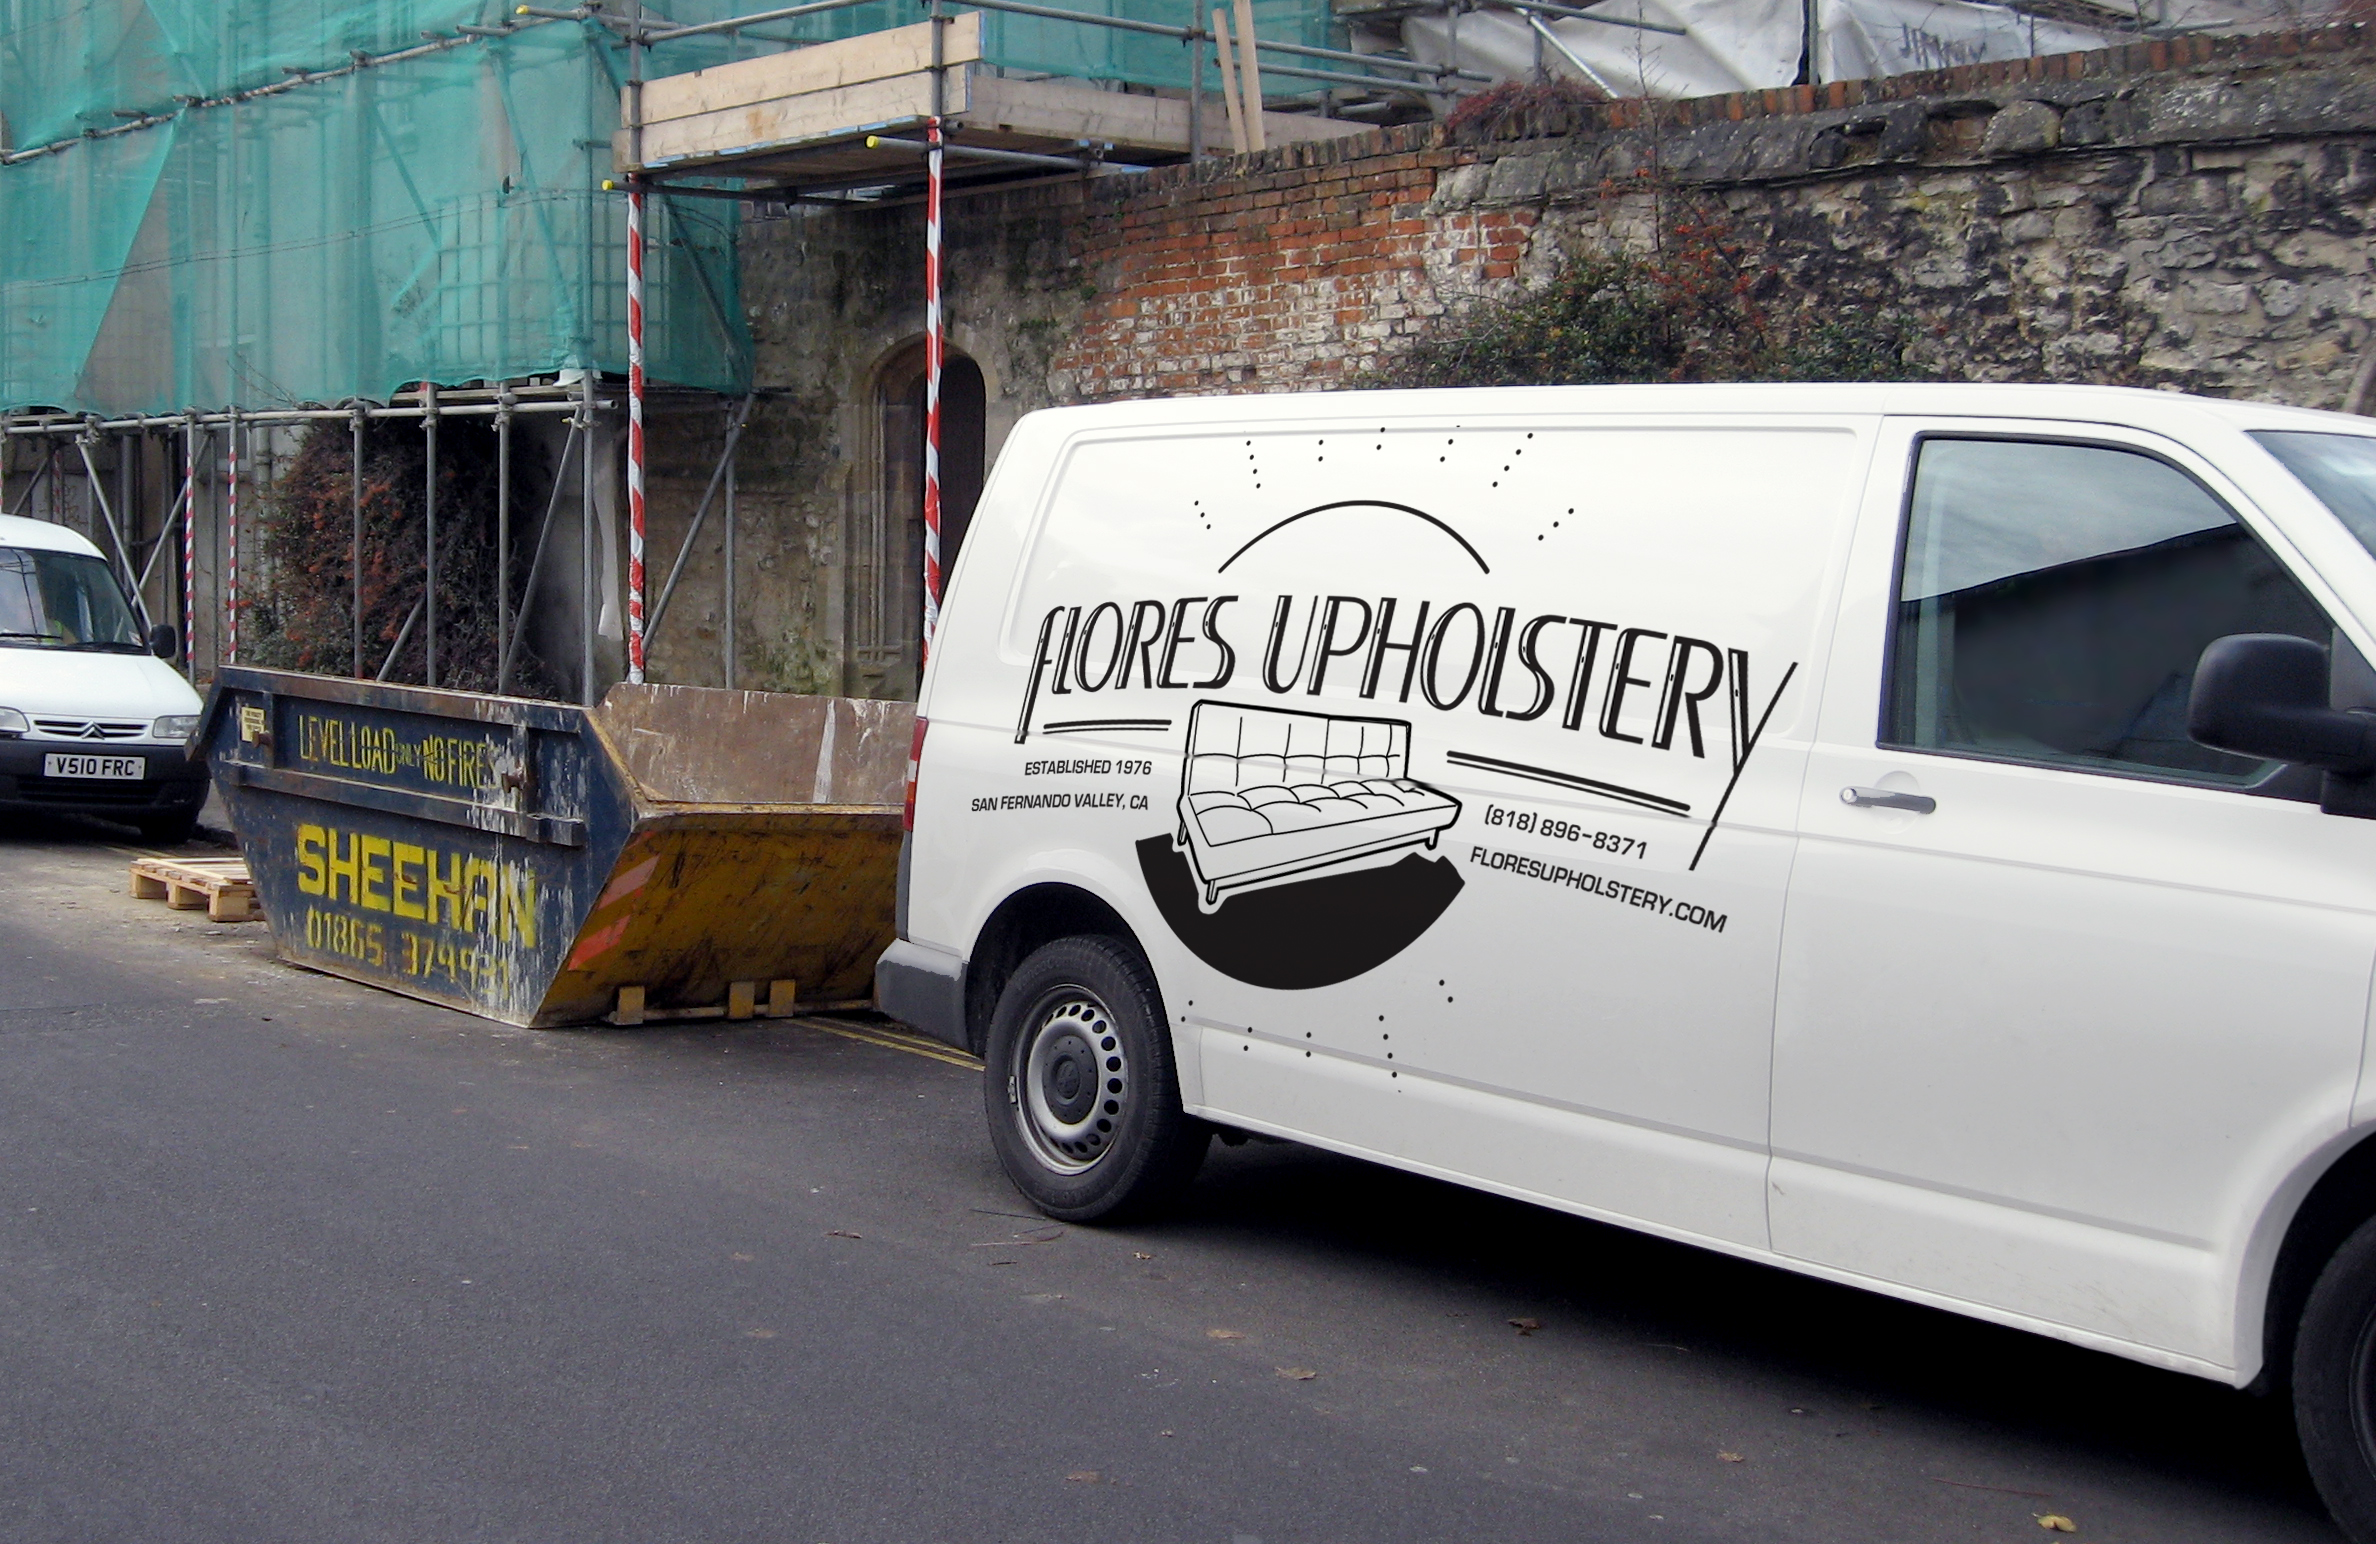 Flores Upholstery